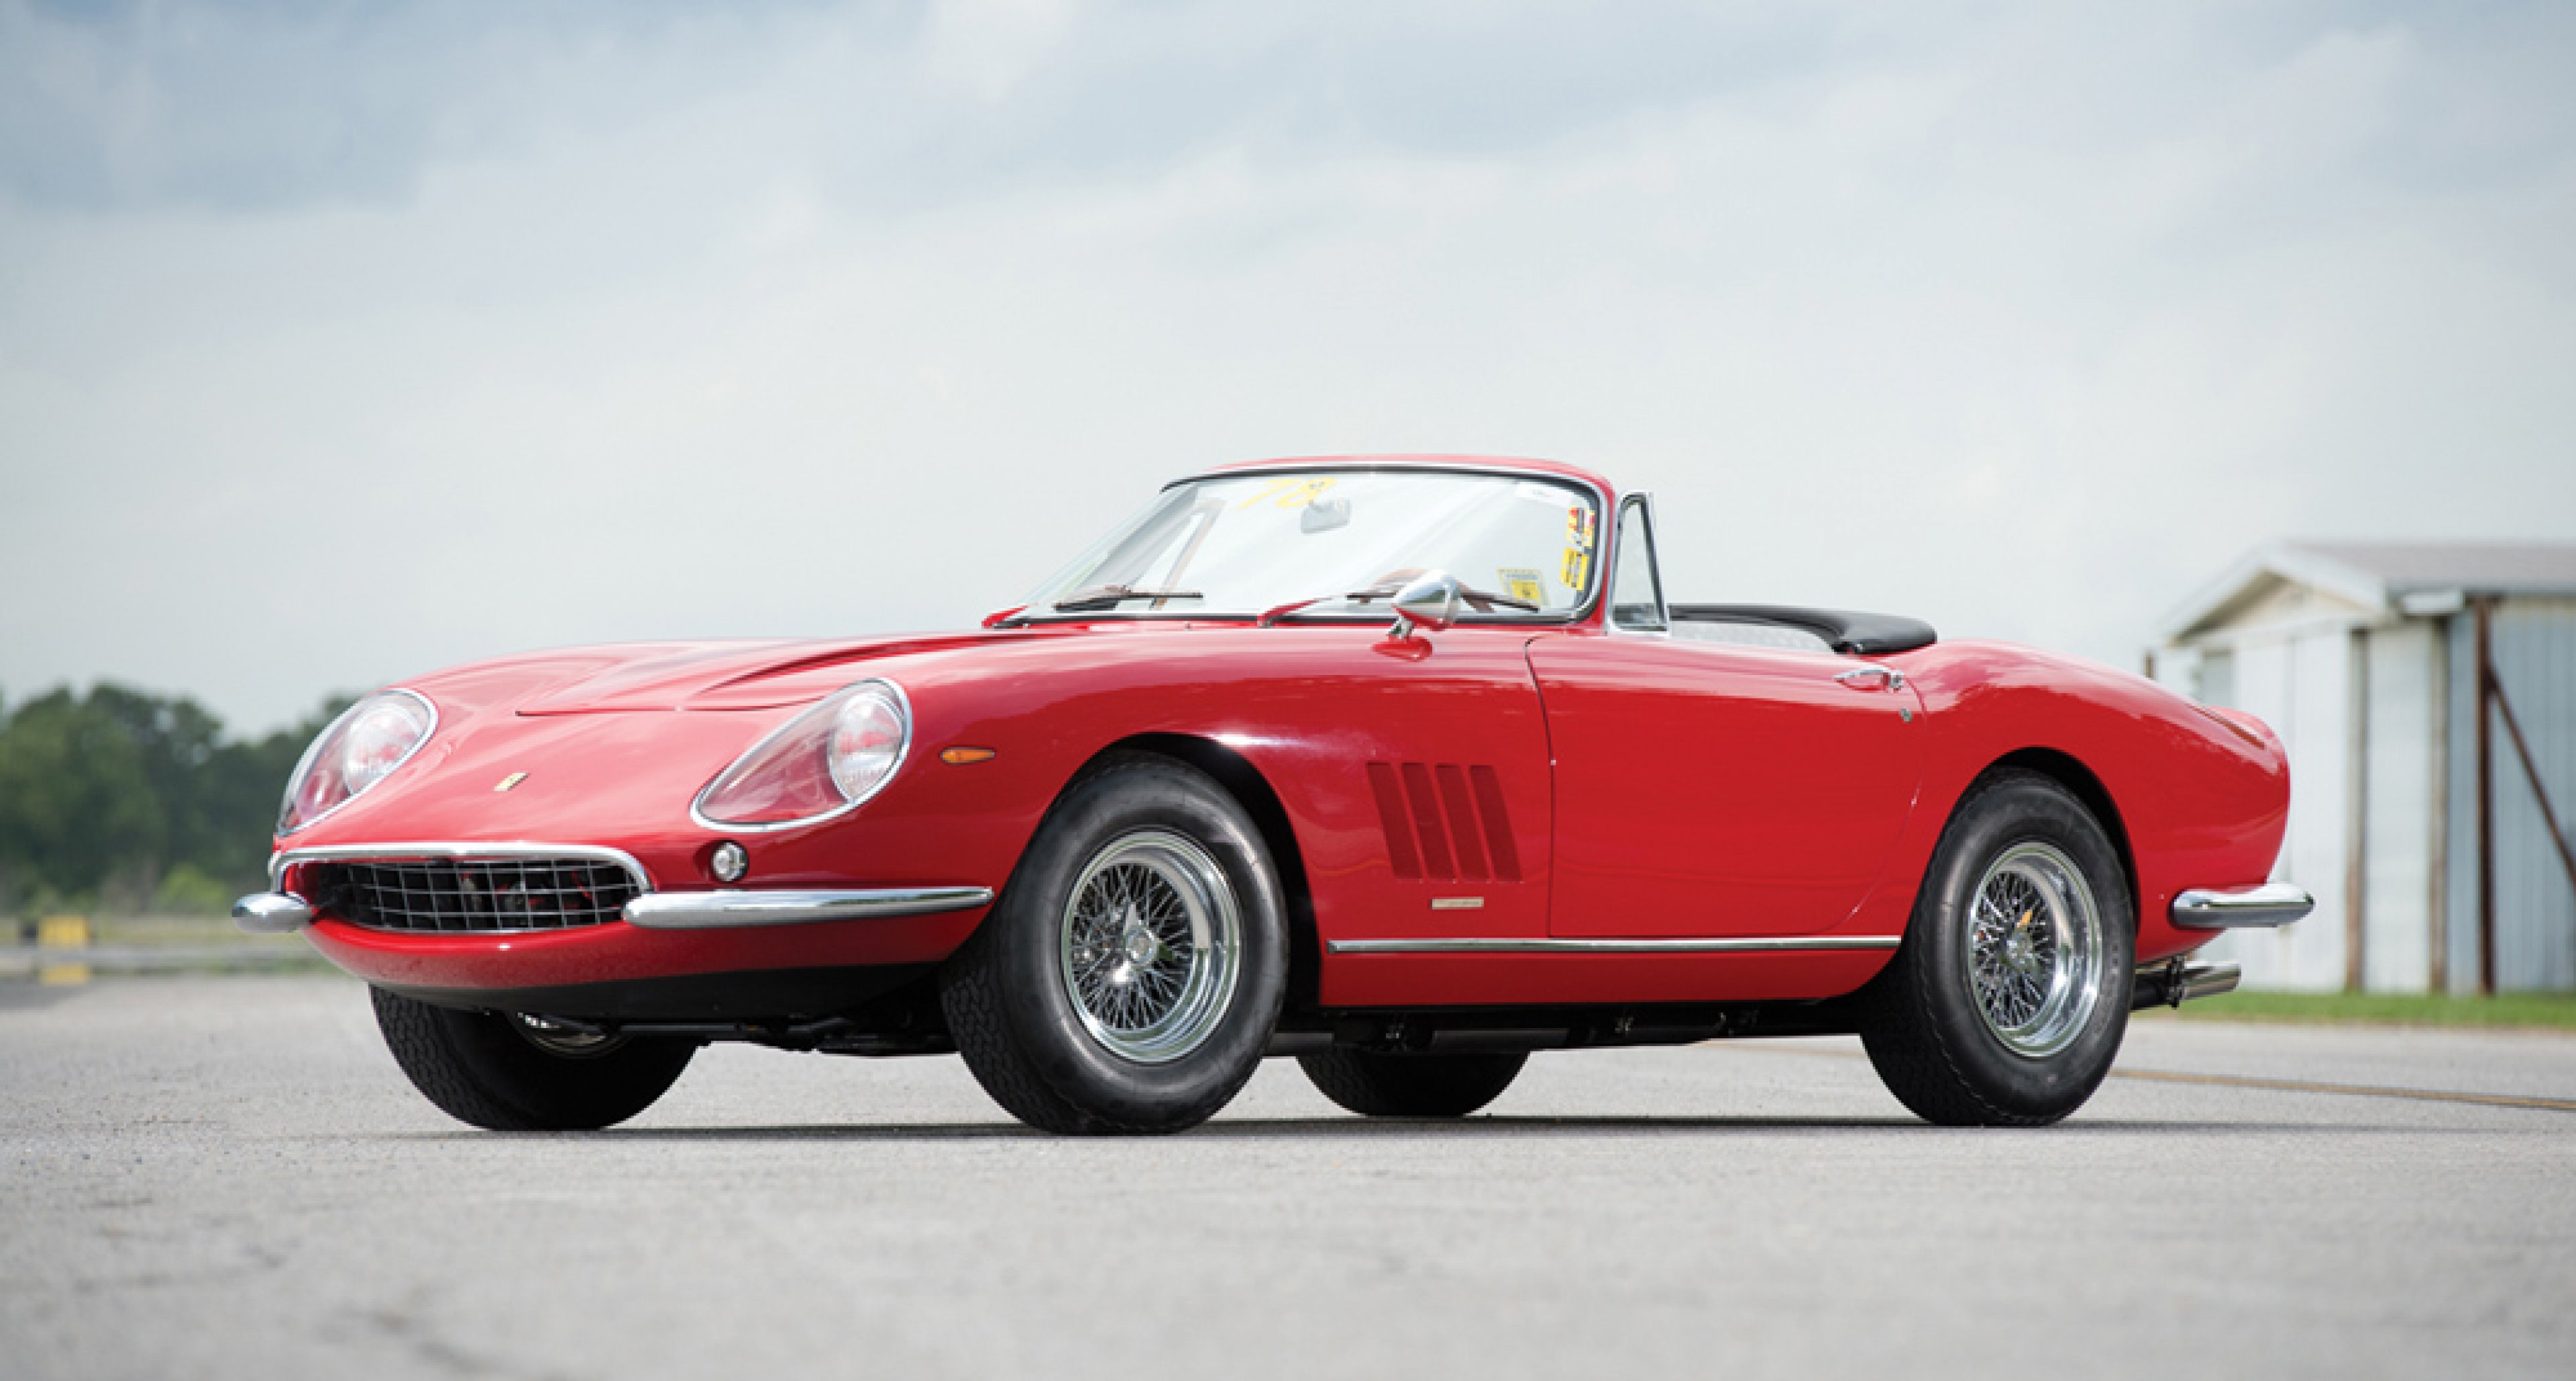 1967 Ferrari 275 GTB/4*S NART Spider, sold in August 2013 by RM Auctions for $ 27,841,786.